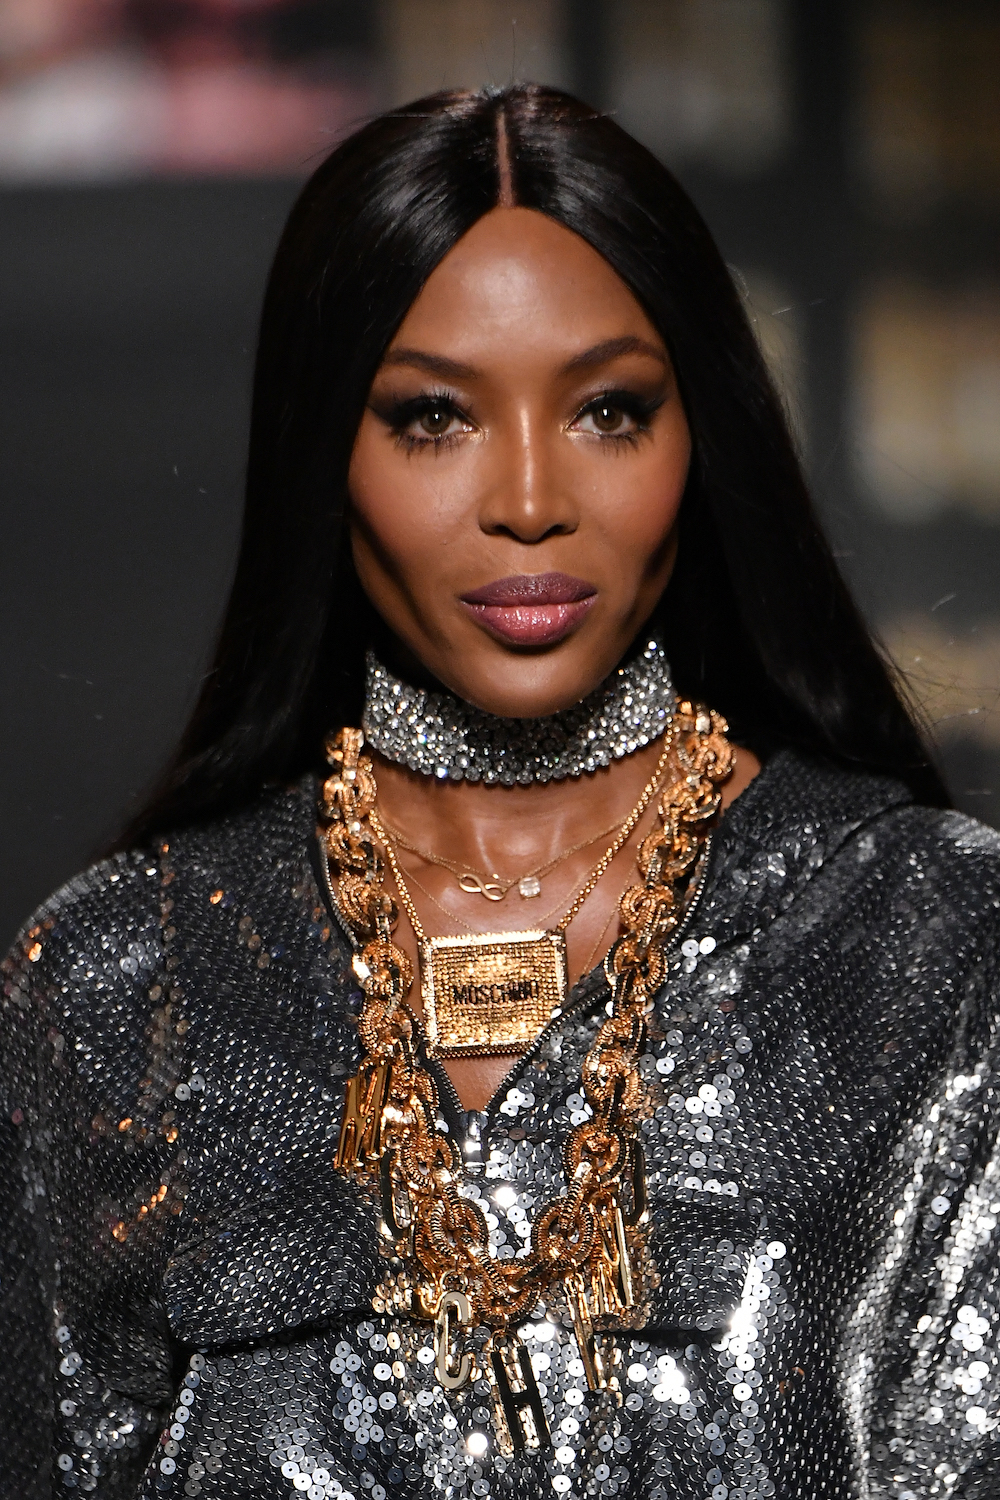 Naomi Campbell attends the Moschino x H&M - Runway at Pier 36 on October 24, 2018 in New York City.